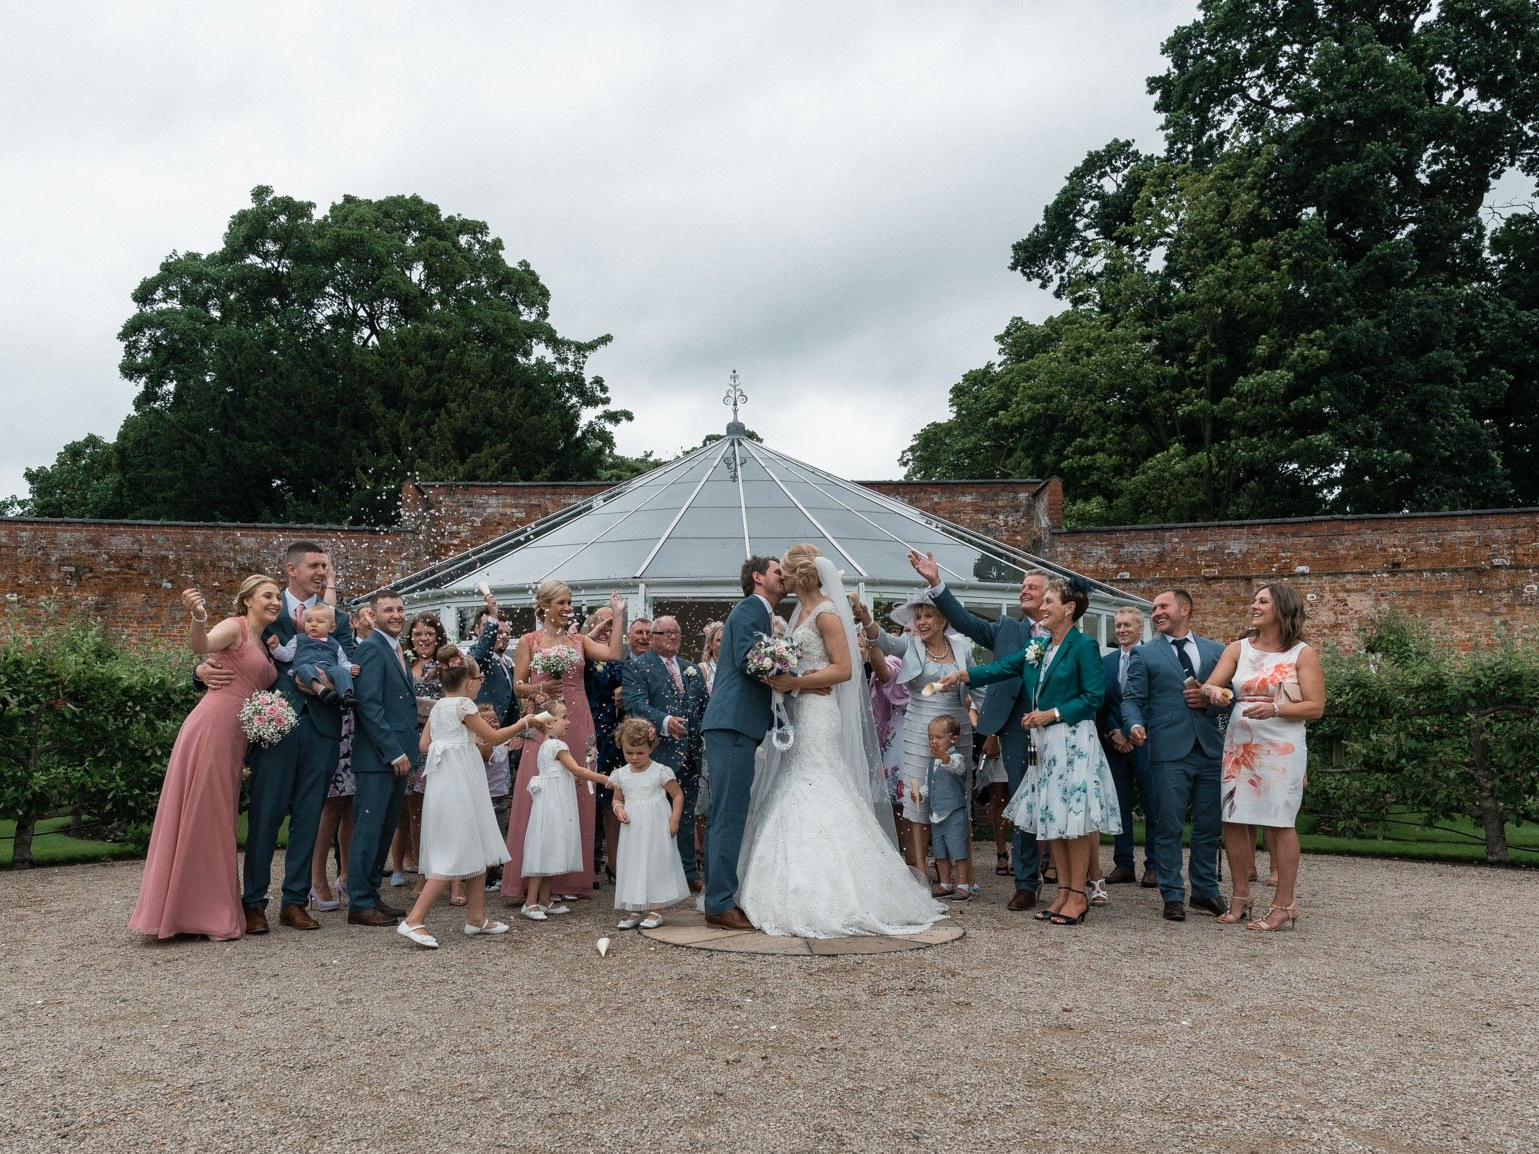 Guests throwing confetti over bride and groom at combermere abbey